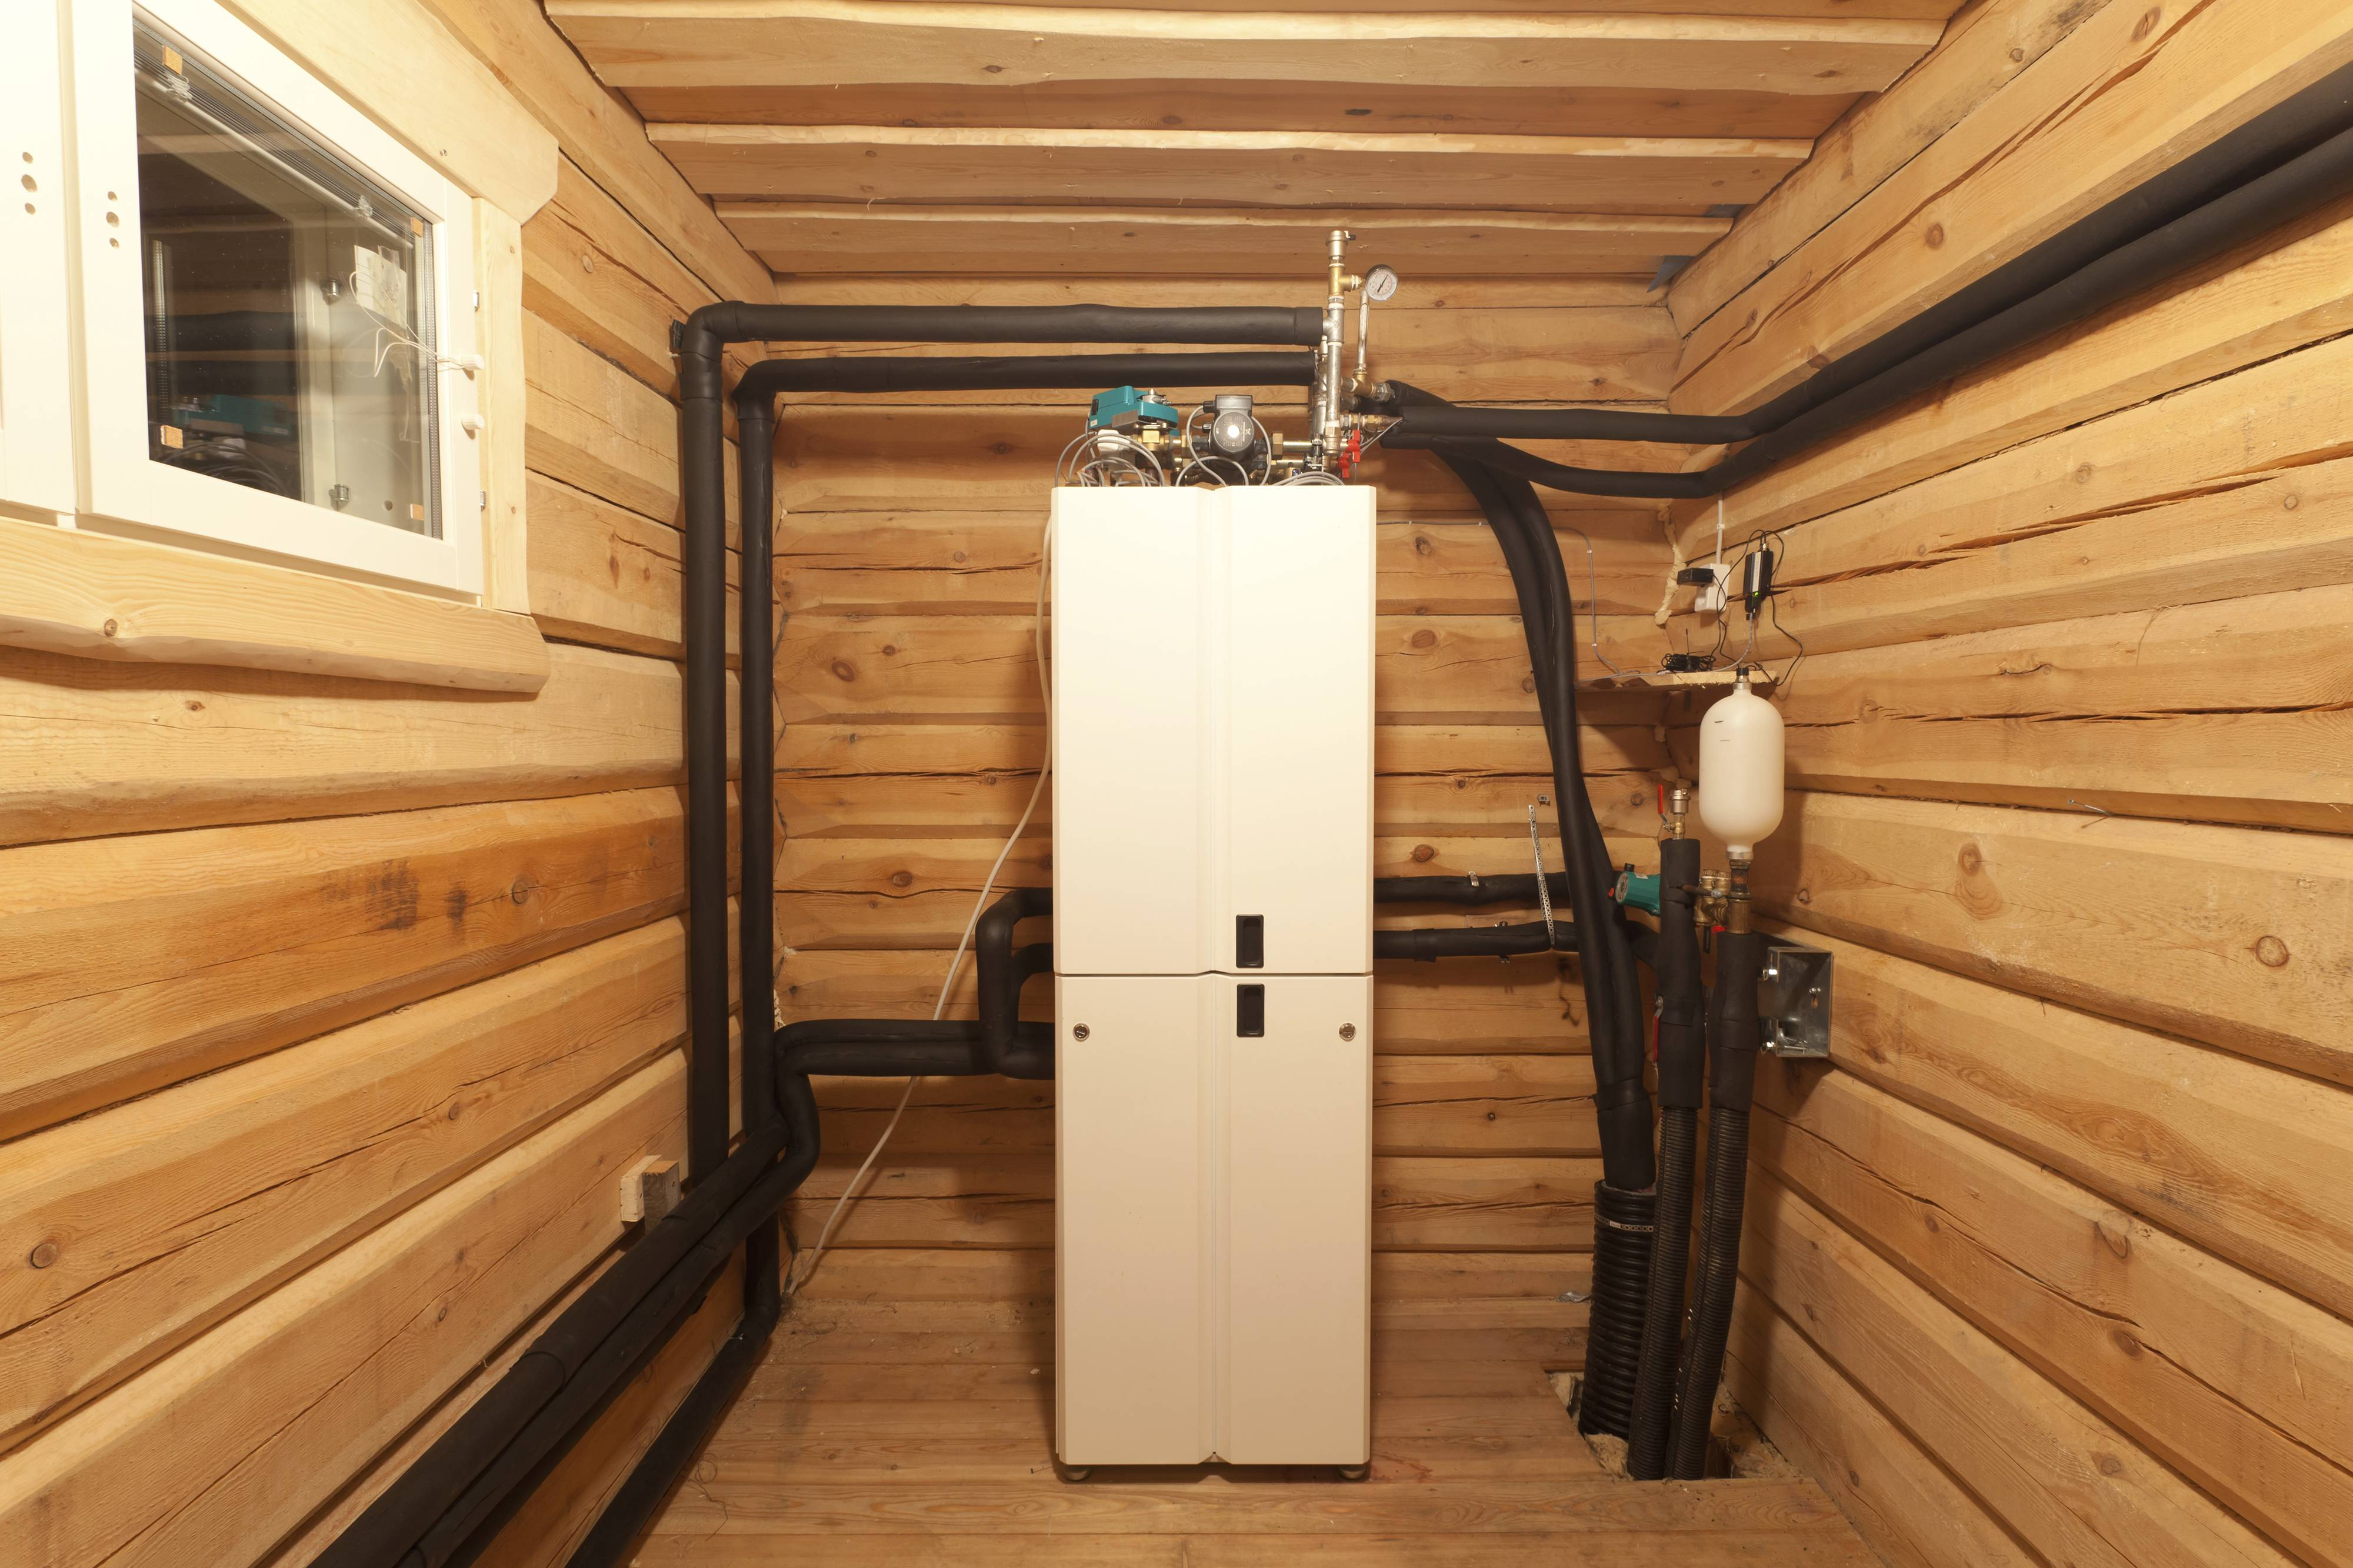 The Different Designs Of Geothermal Heat Pump Systems